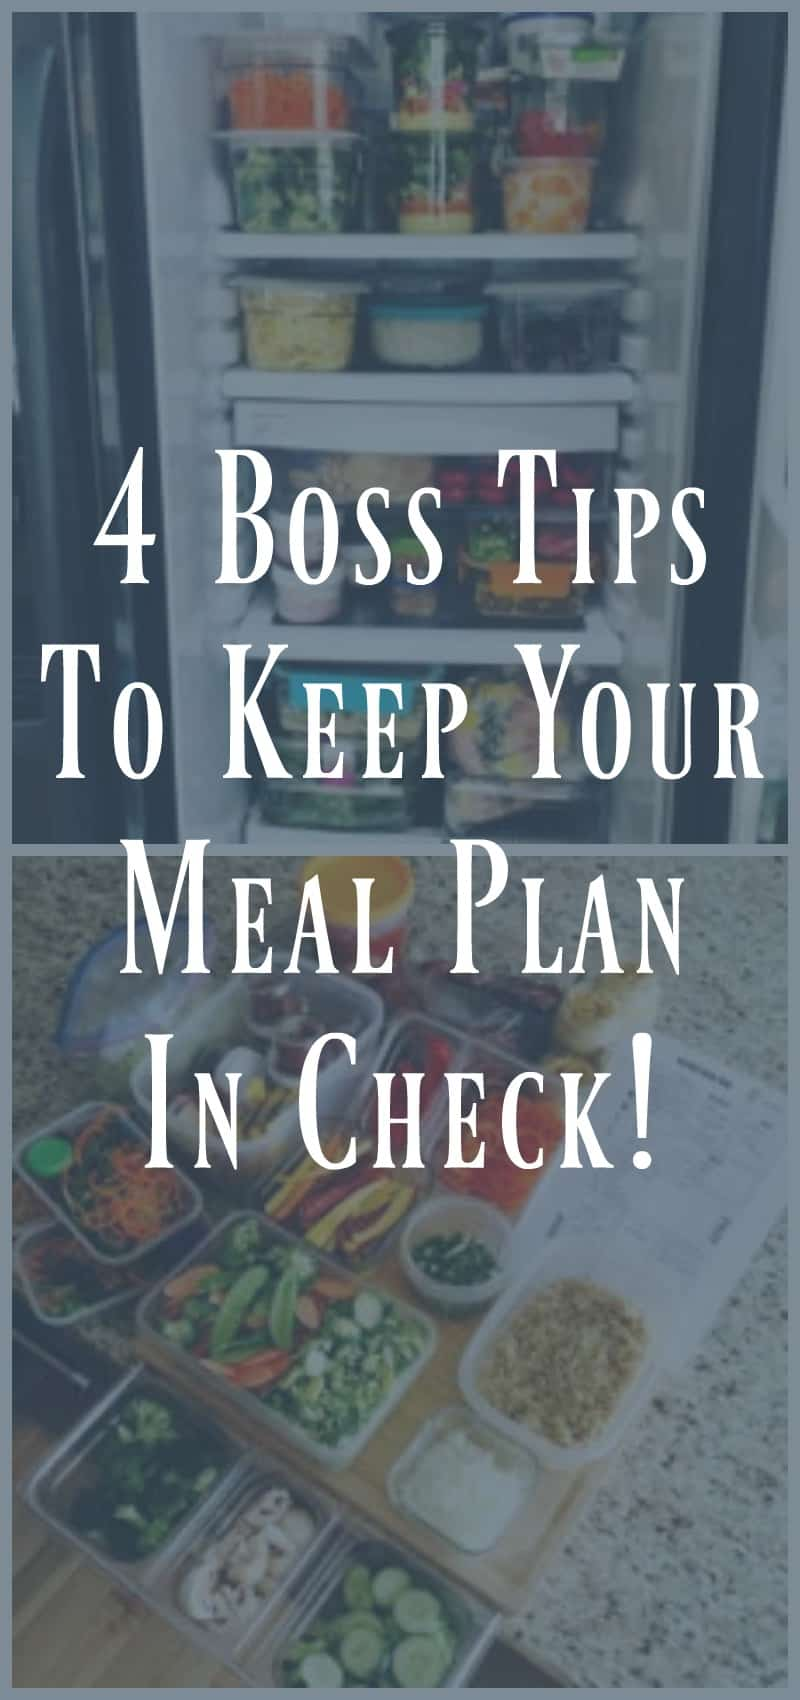 4 Boss Tips to Keep Your Meal Plan in Check!